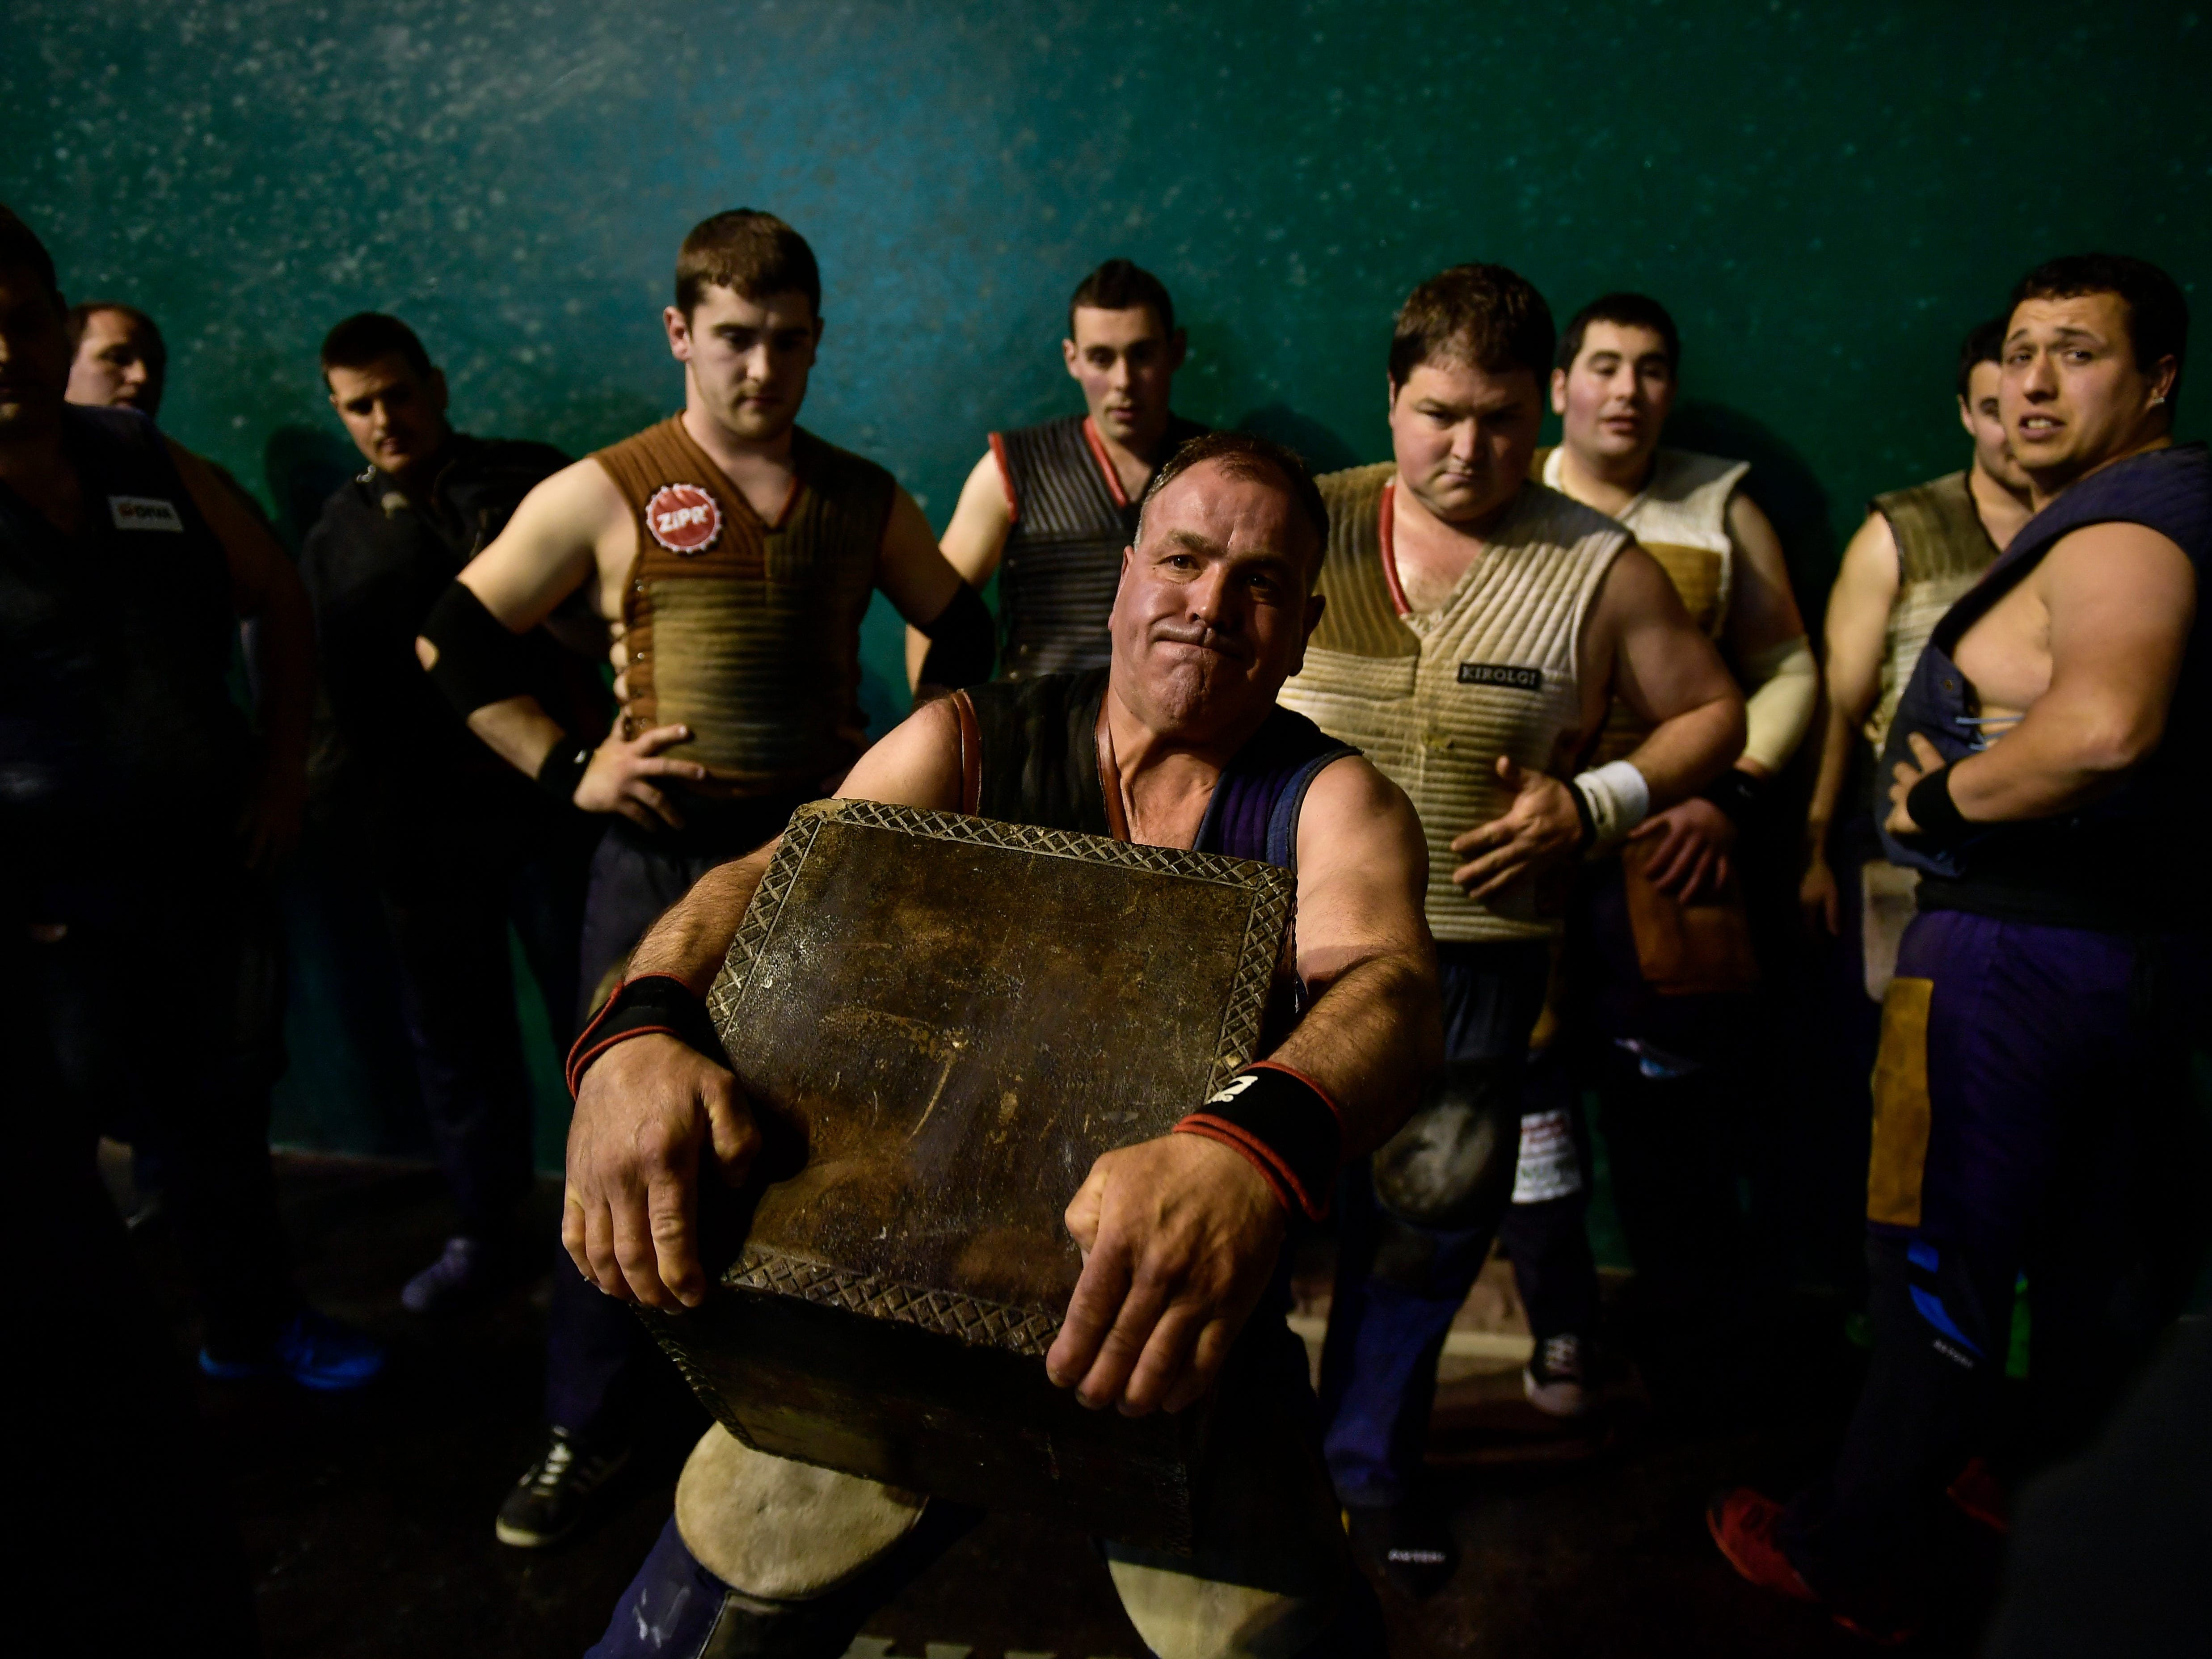 """Jose Ramon Izeta, 52, a former basque stone lifter, holds a 100 kilograms stone, during an exhibition in the basque village of Azkoitia, northern Spain.  The """"Harri-jasotze,"""" or """"Stone Lifters"""" in the local language of the mountainous Basque Country region, faces contorted by the effort these burly competitors strain to lift massive weights as many times as they can."""